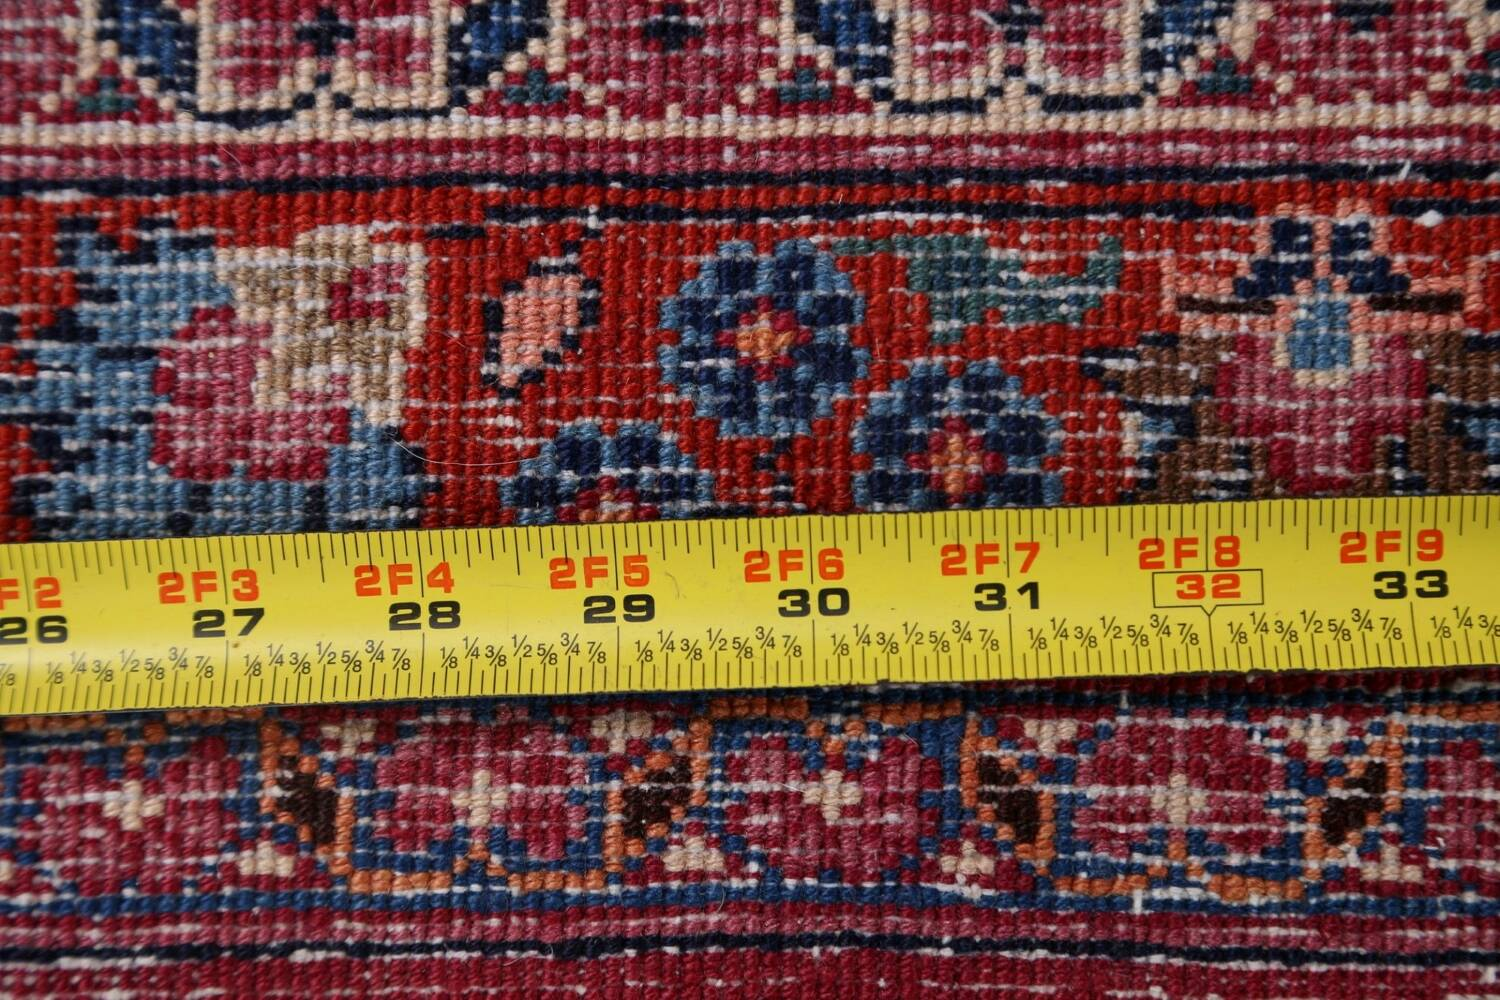 Antique Floral Vegetable Dye Mashad Persian Area Rug 10x13 image 24